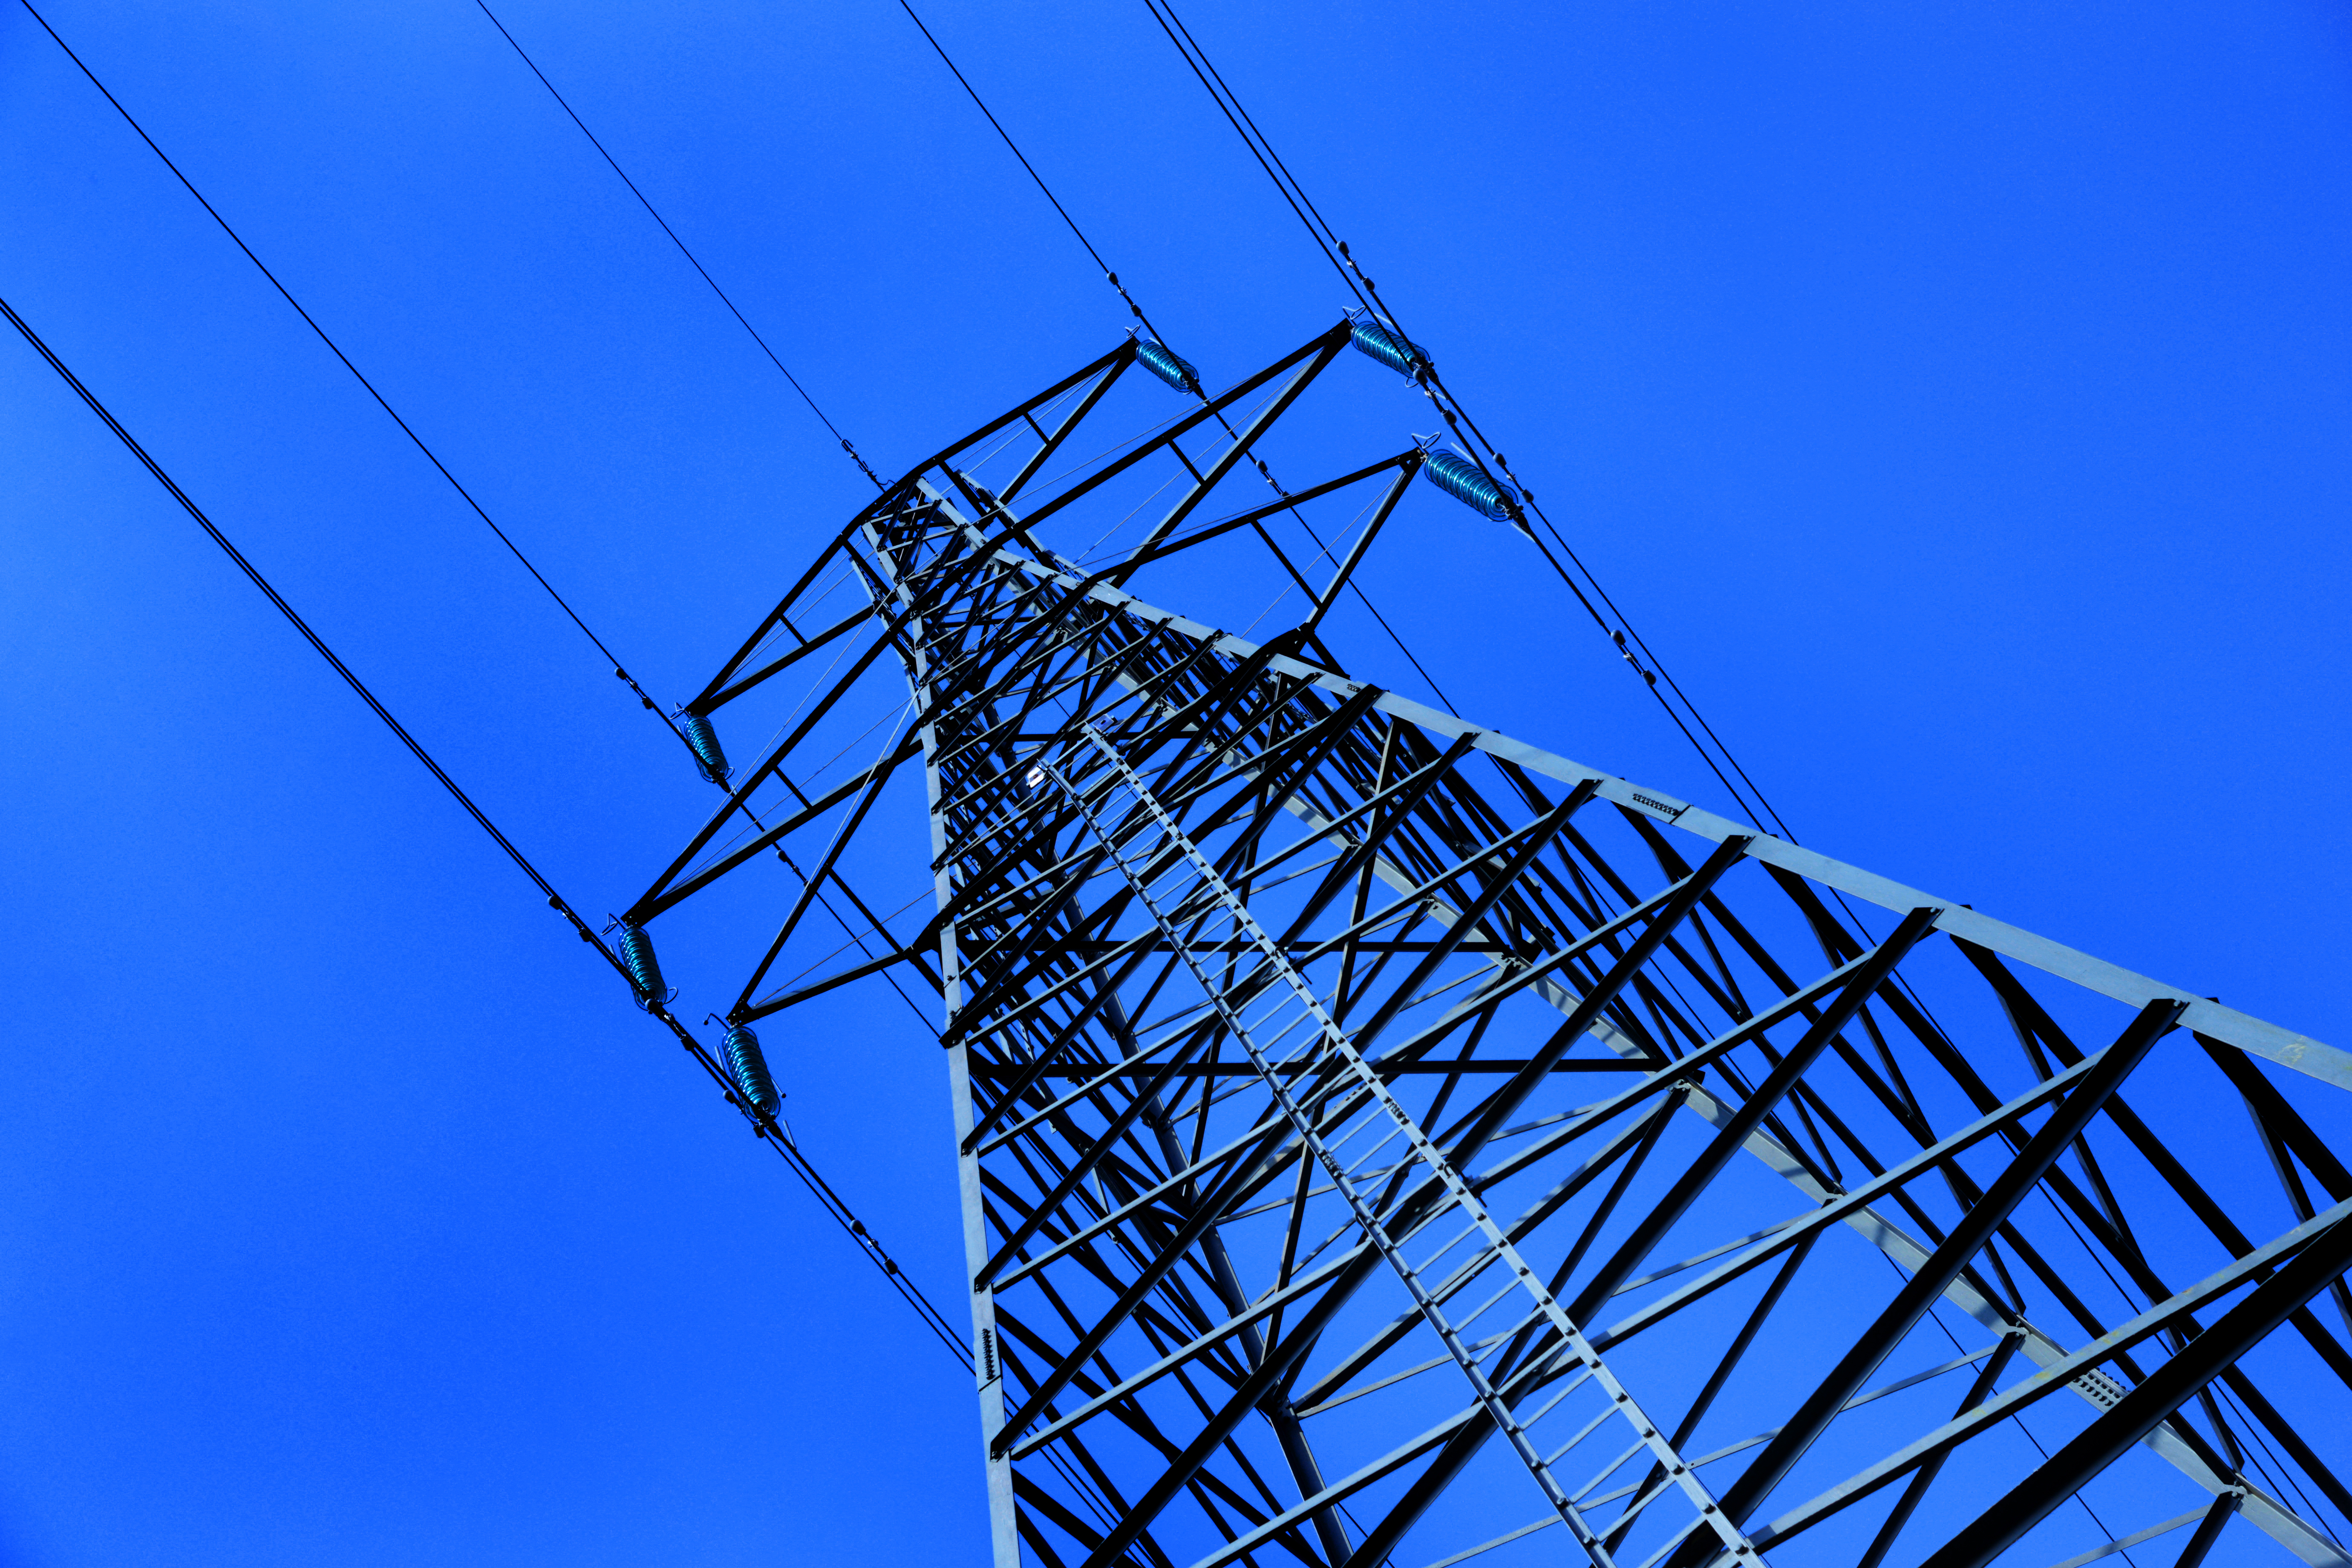 Will the cost of electricity come down